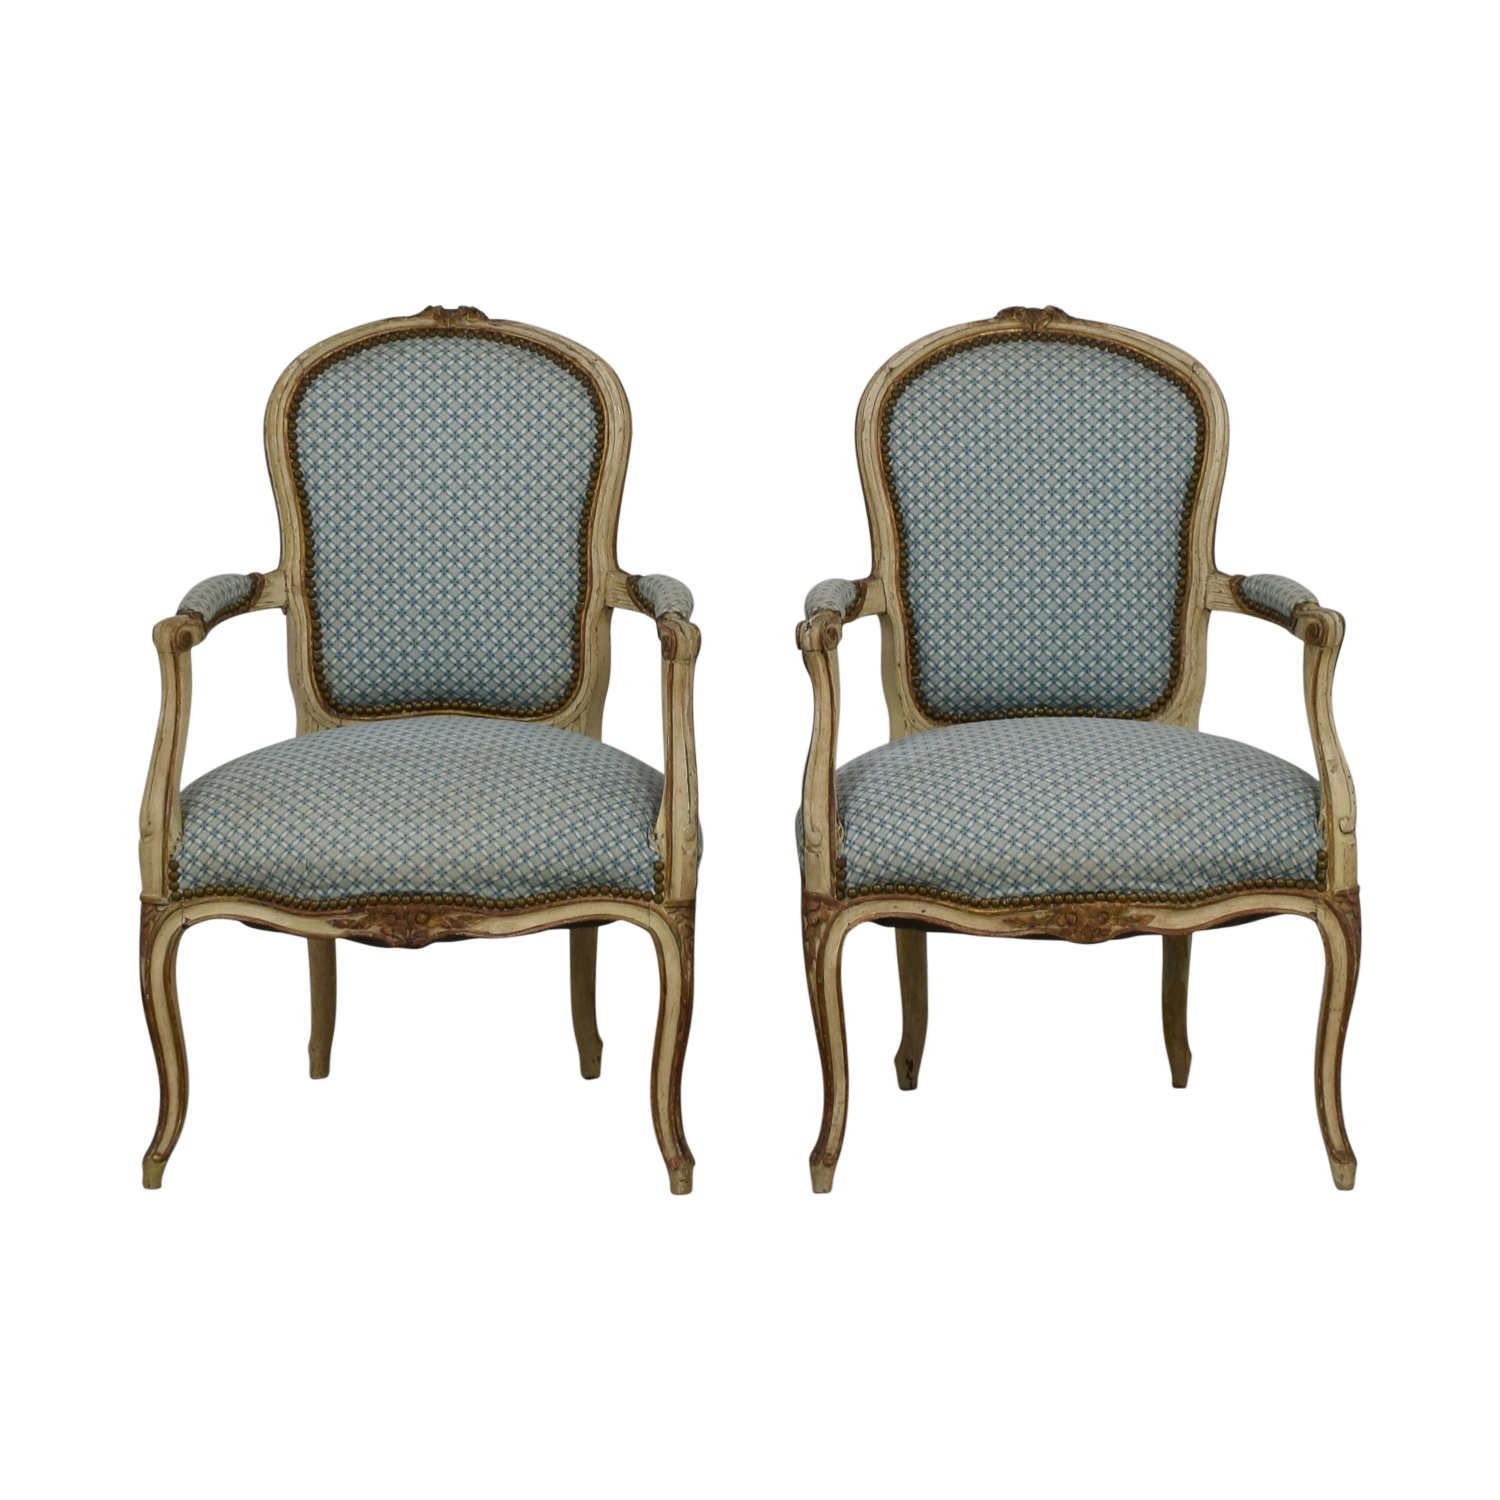 Furniture Masters Furniture Masters Blue and White Accent Chairs discount